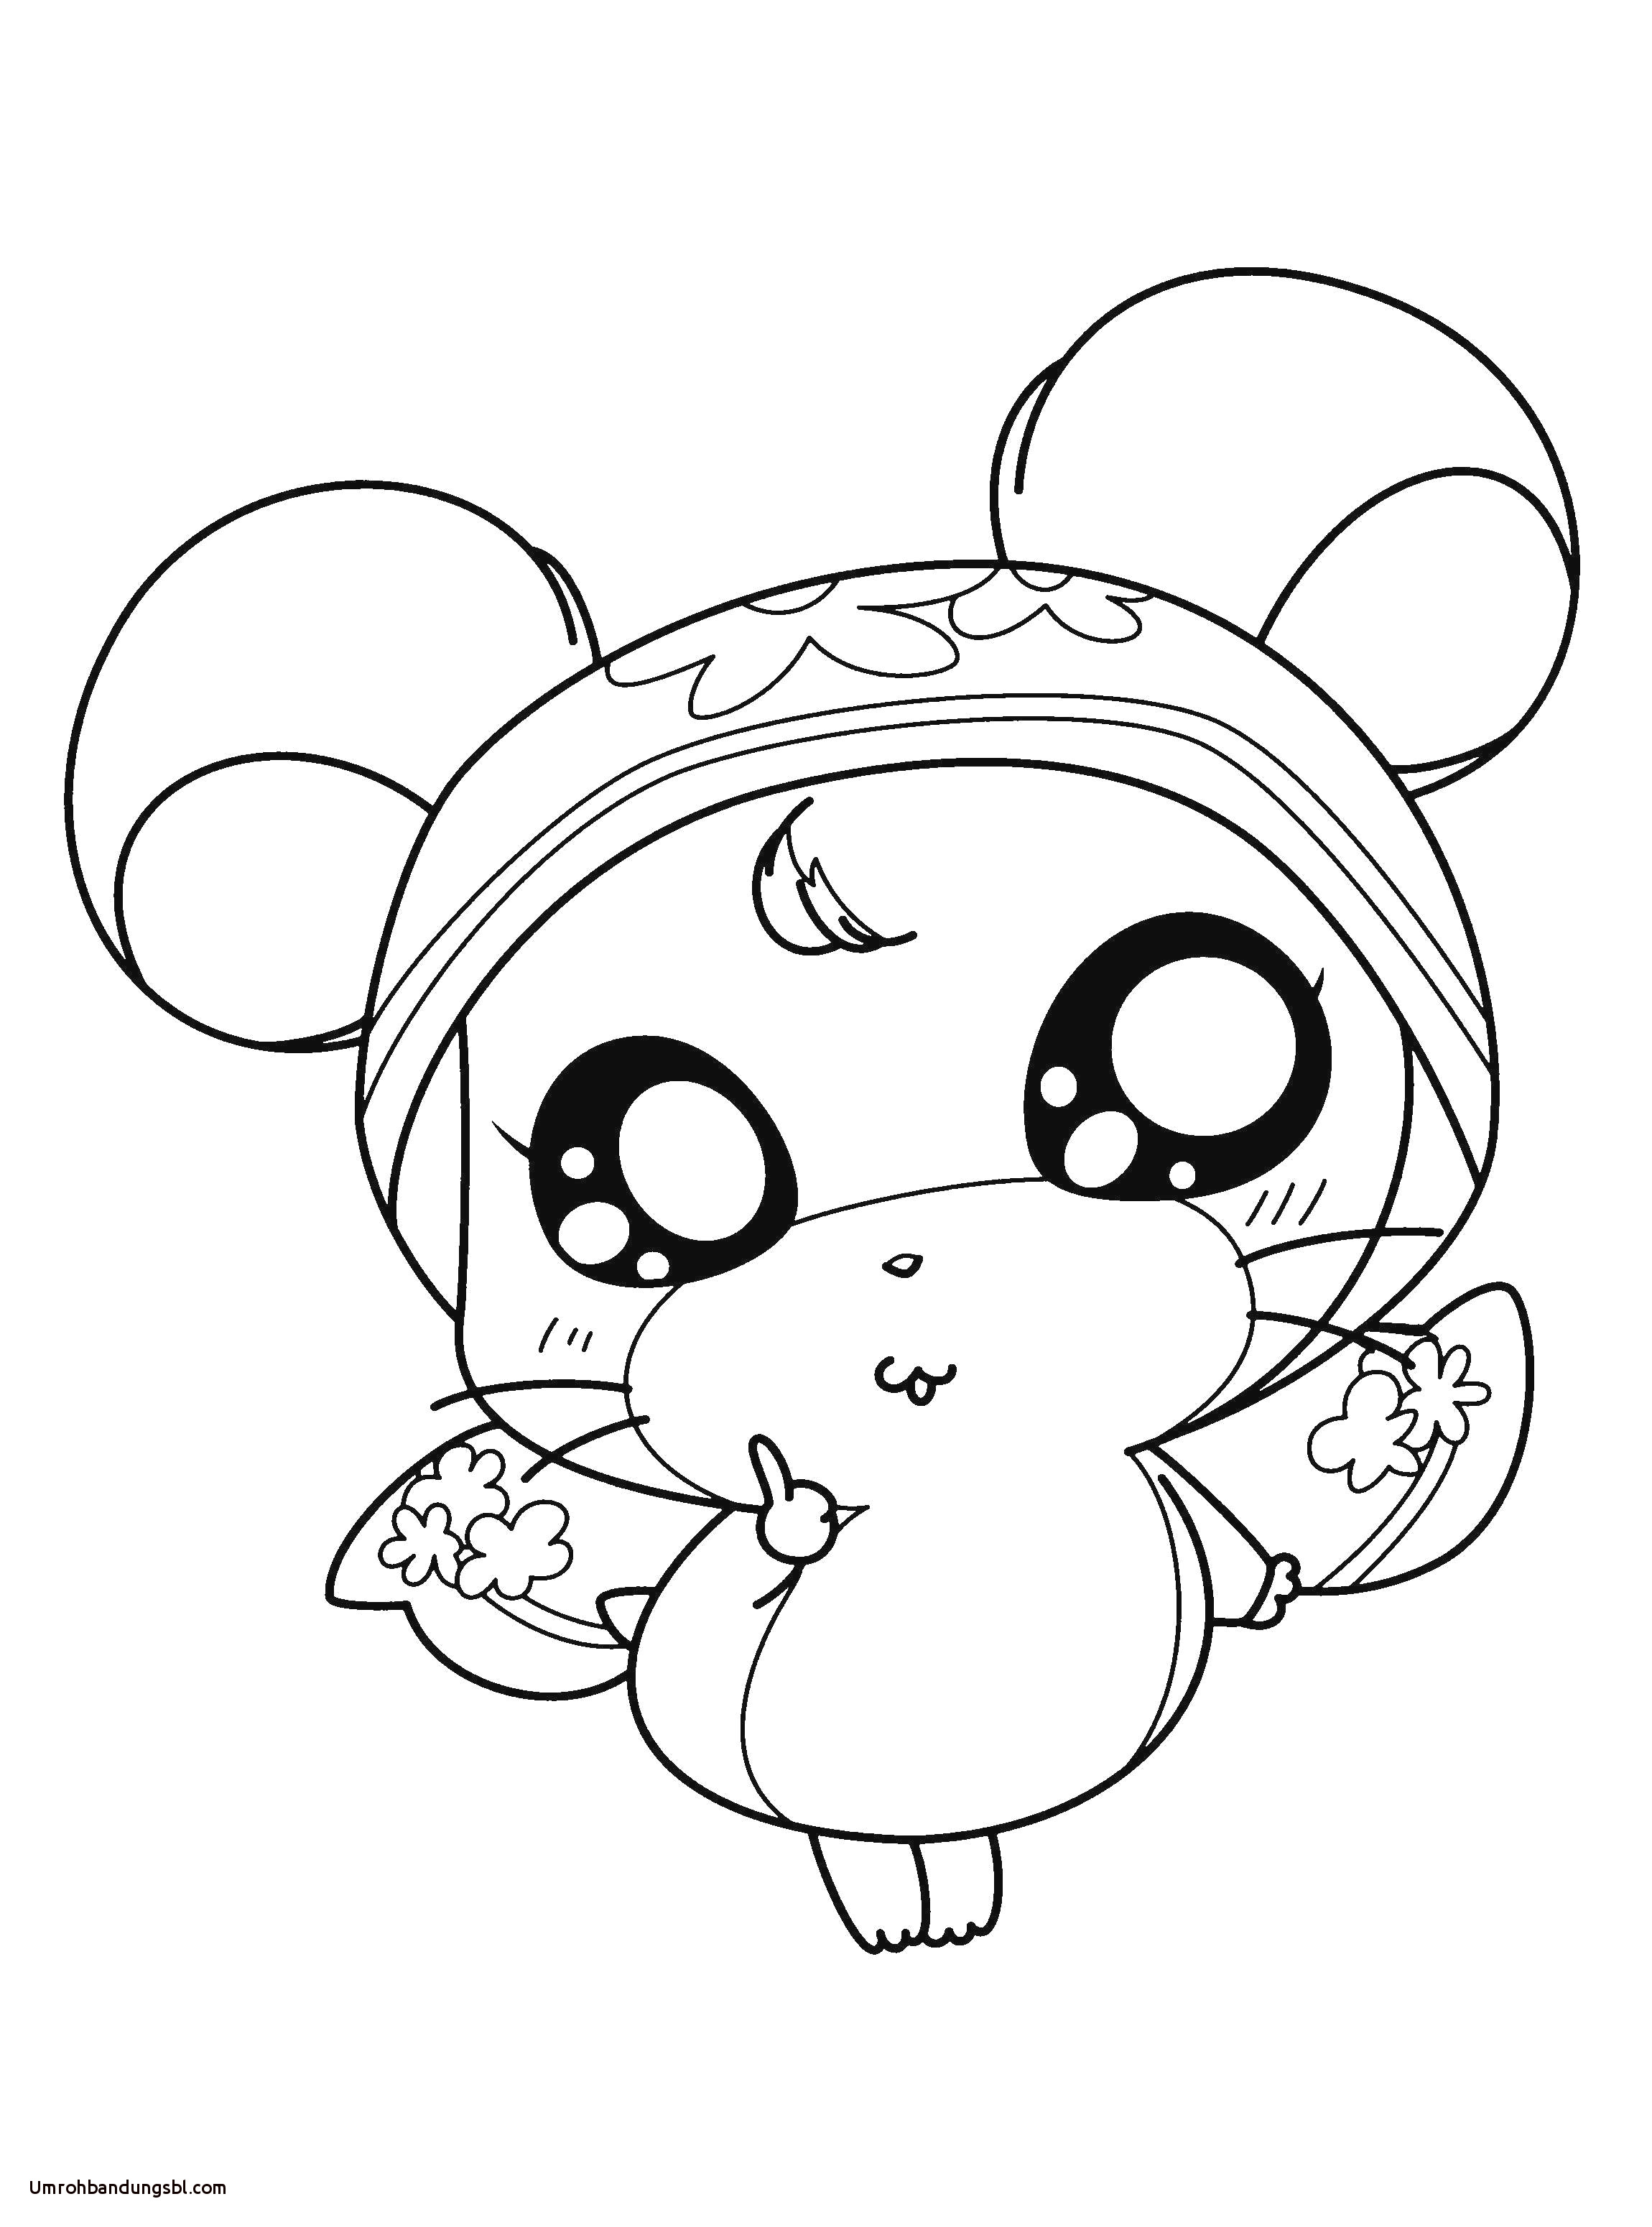 shopkins coloring pages Collection-Girls Coloring Book New Coloring Pages for Kides Fresh Coloring Printables 0d – Fun Time 8-l